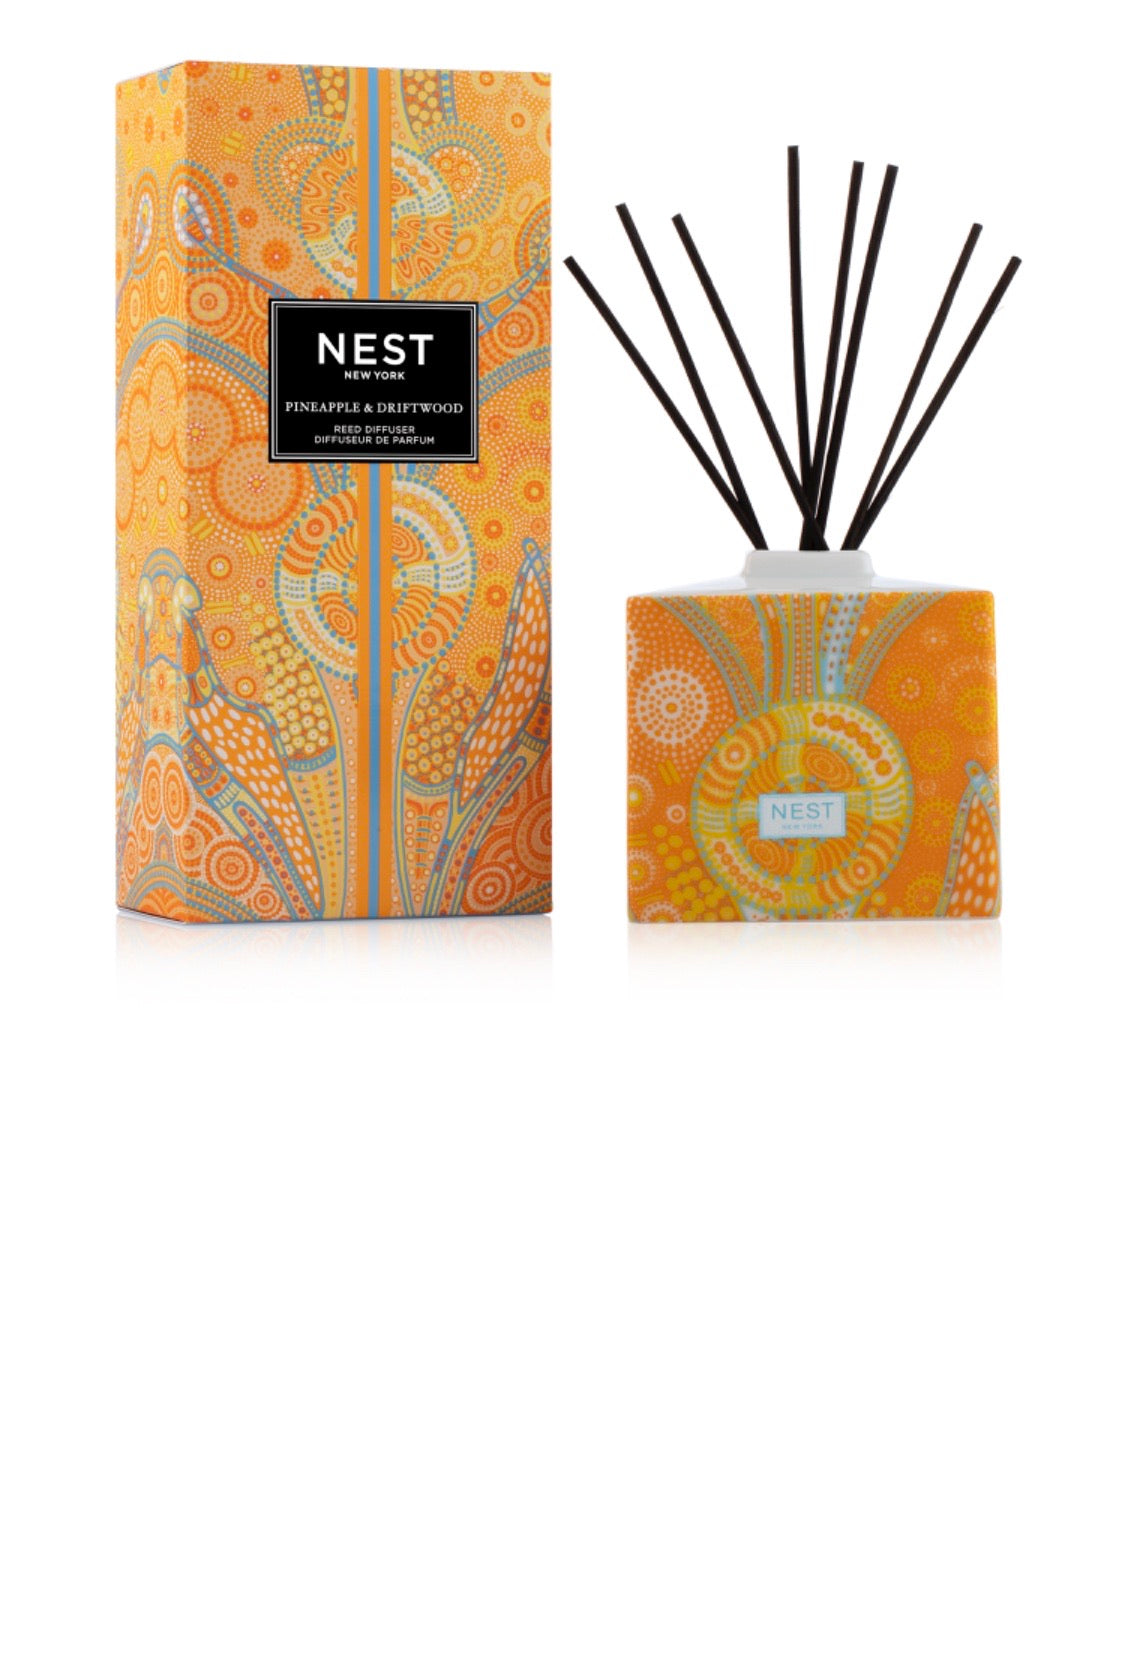 Nest pineapple and driftwood diffuser